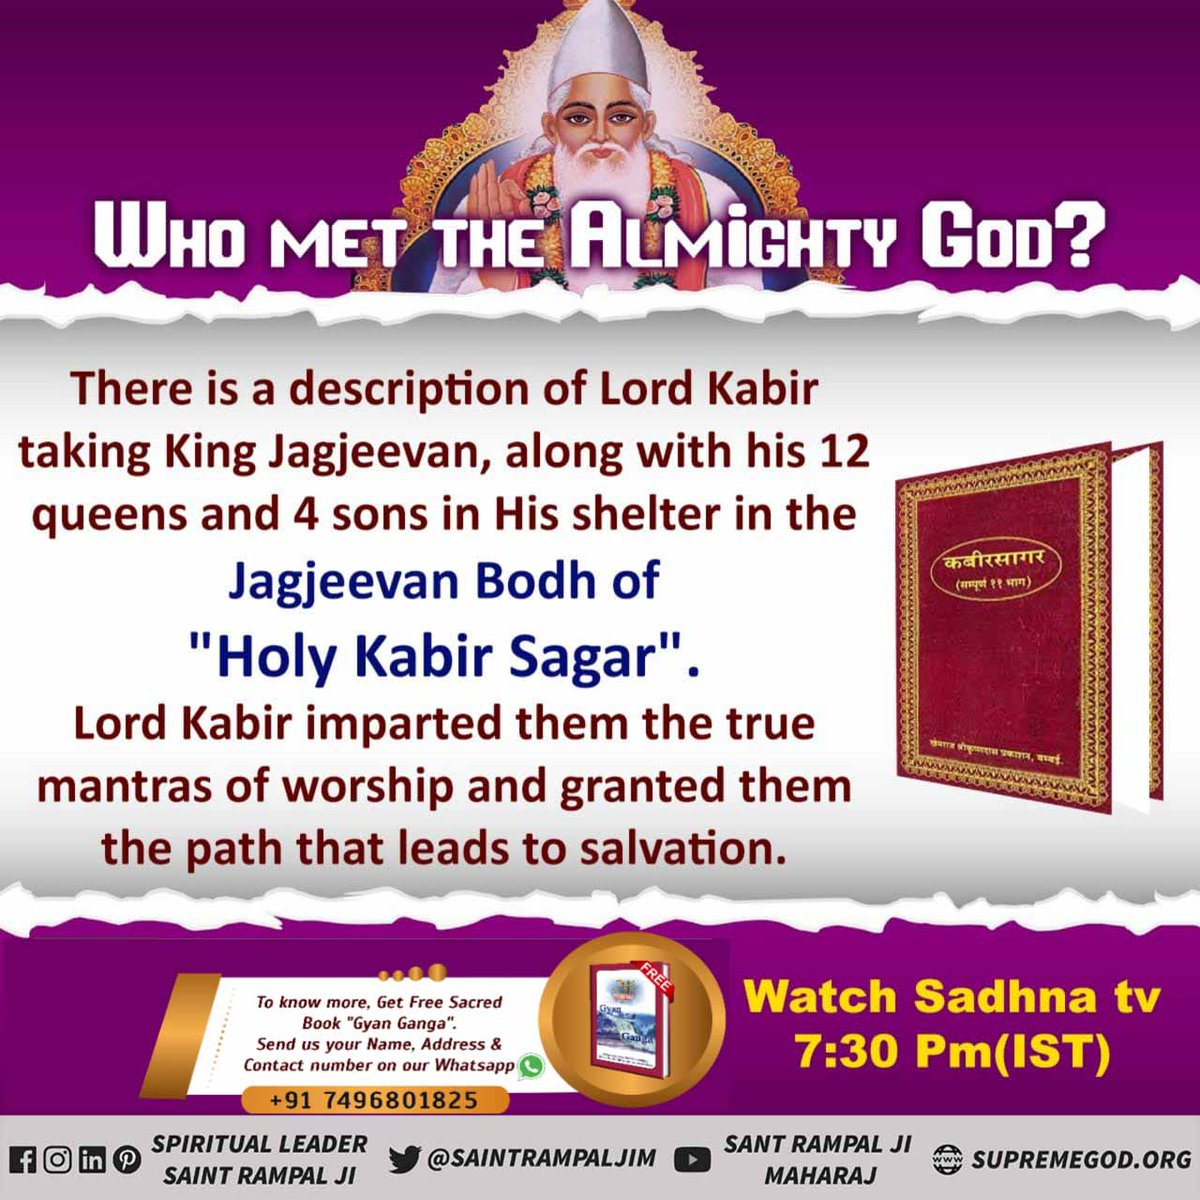 #EyeWitnessOfGod Kabir Saheb appears with different name in different places and imparts true spiritual knowledge. He is the destroyer of sins. God is one. 👍 @SaurabK15030002 @SaintRampalJiM @SatlokChannel